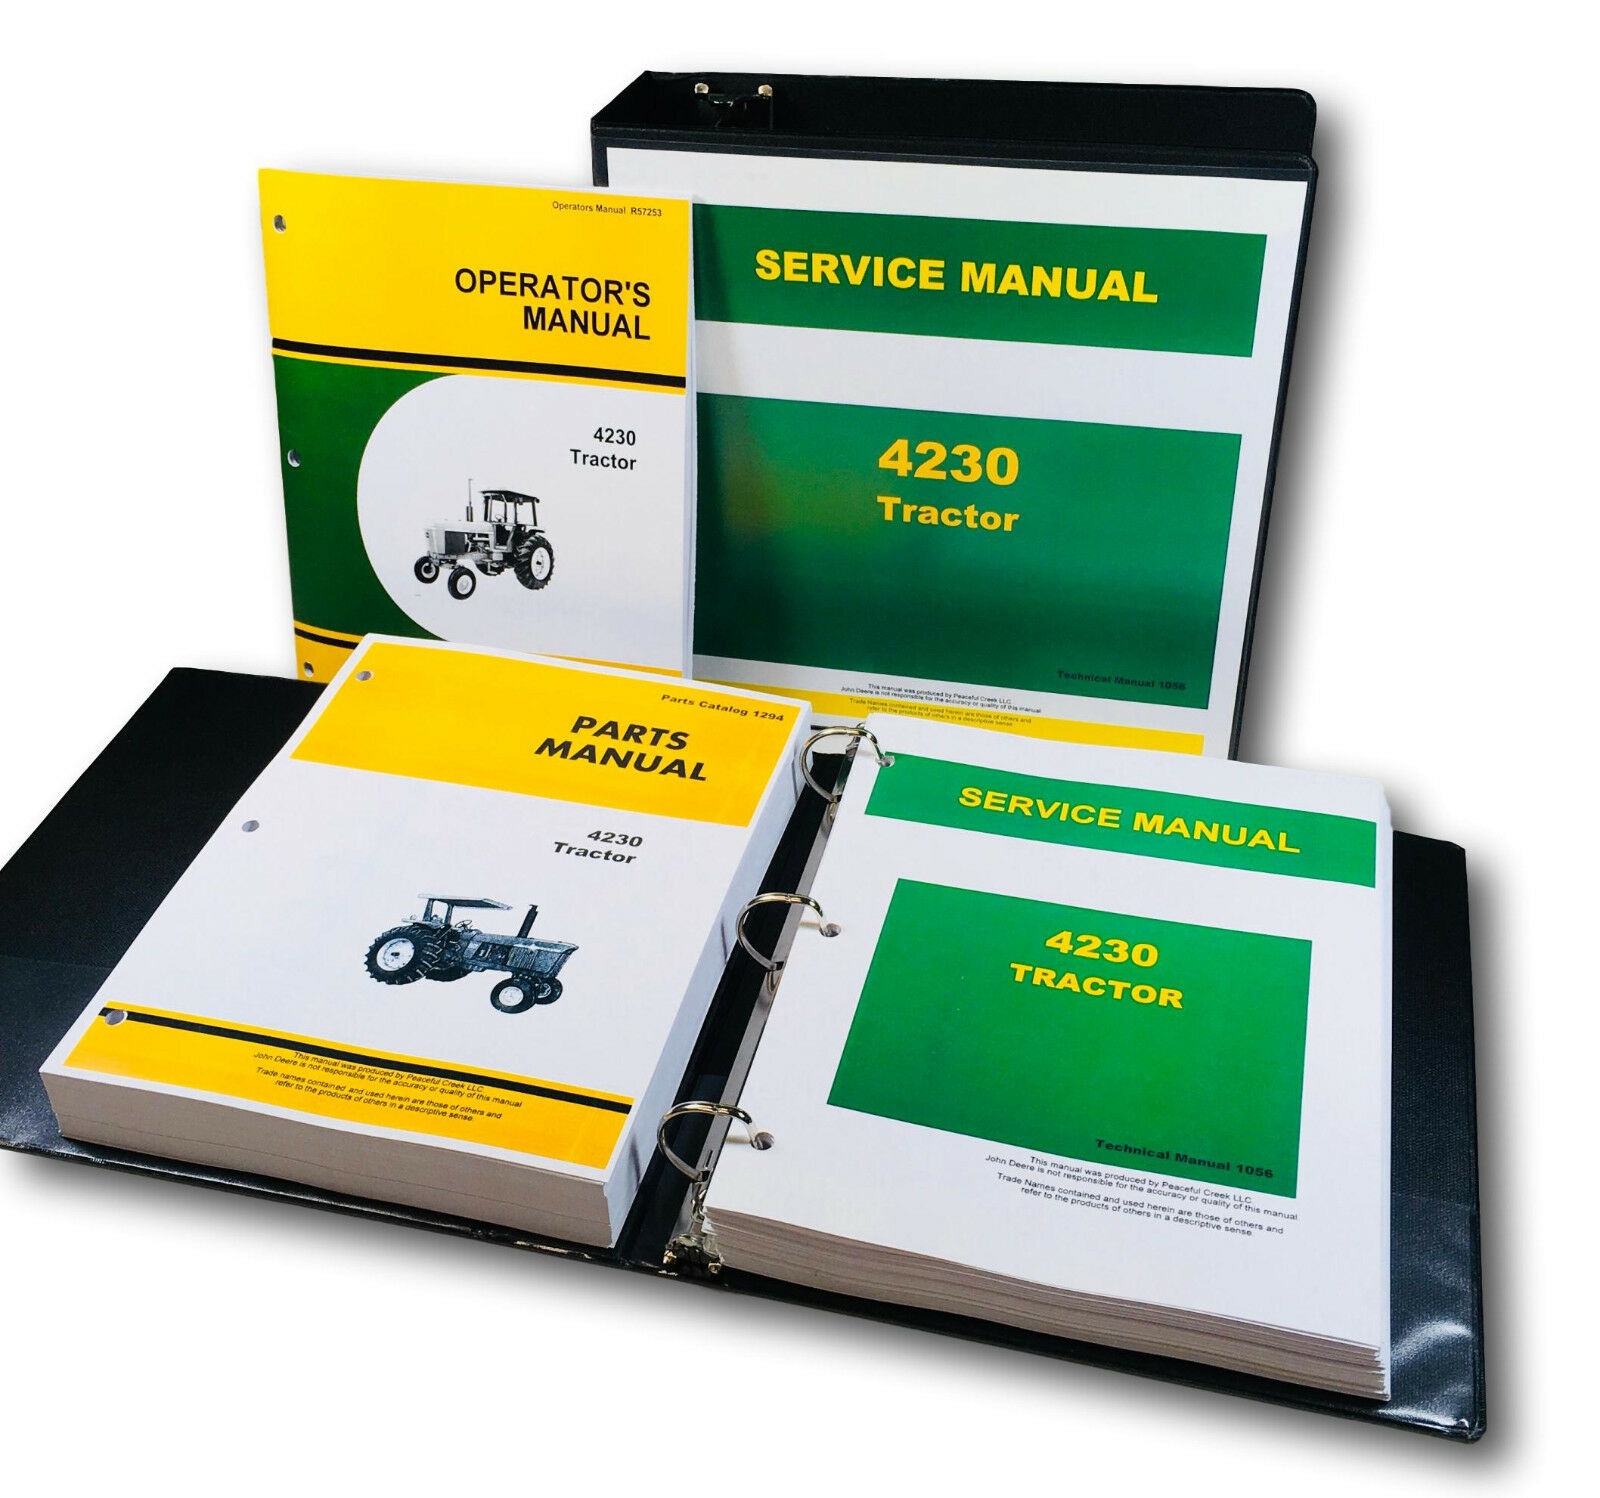 Technical Service Parts Operators Manual For John Deere 4230 Tractor. Plete Service Repairoverhaulparts Operators Manuals. John Deere. John Deere 4230 Parts Diagram Air Conditioning At Scoala.co